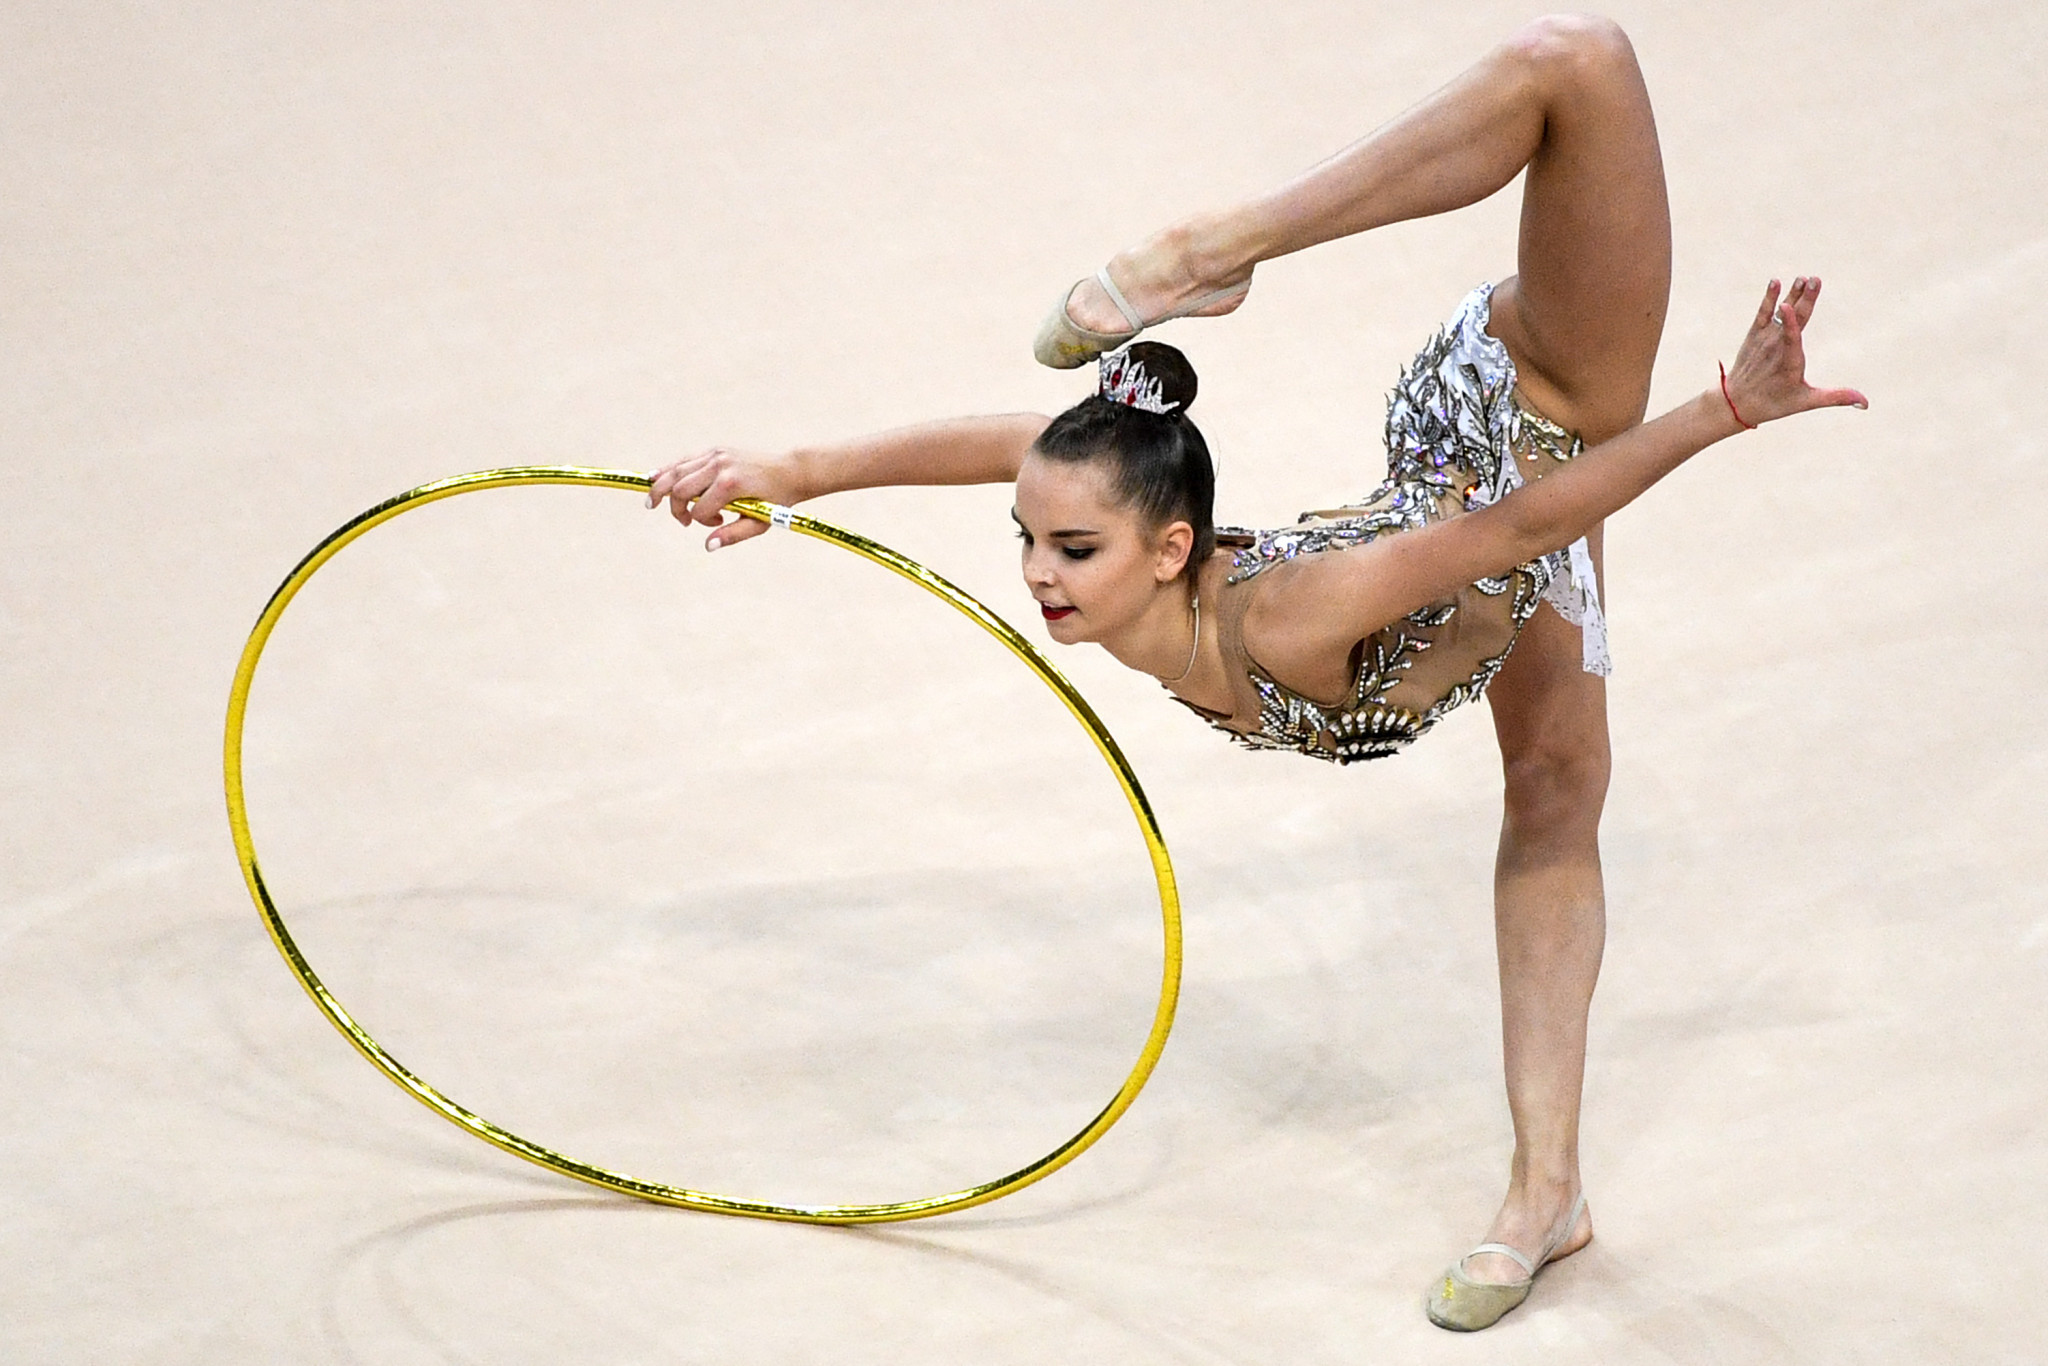 Defending all-around champion Dina Averina made a strong start with the hoop at the FIG Rhythmic Gymnastics World Championships in Baku ©Getty Images